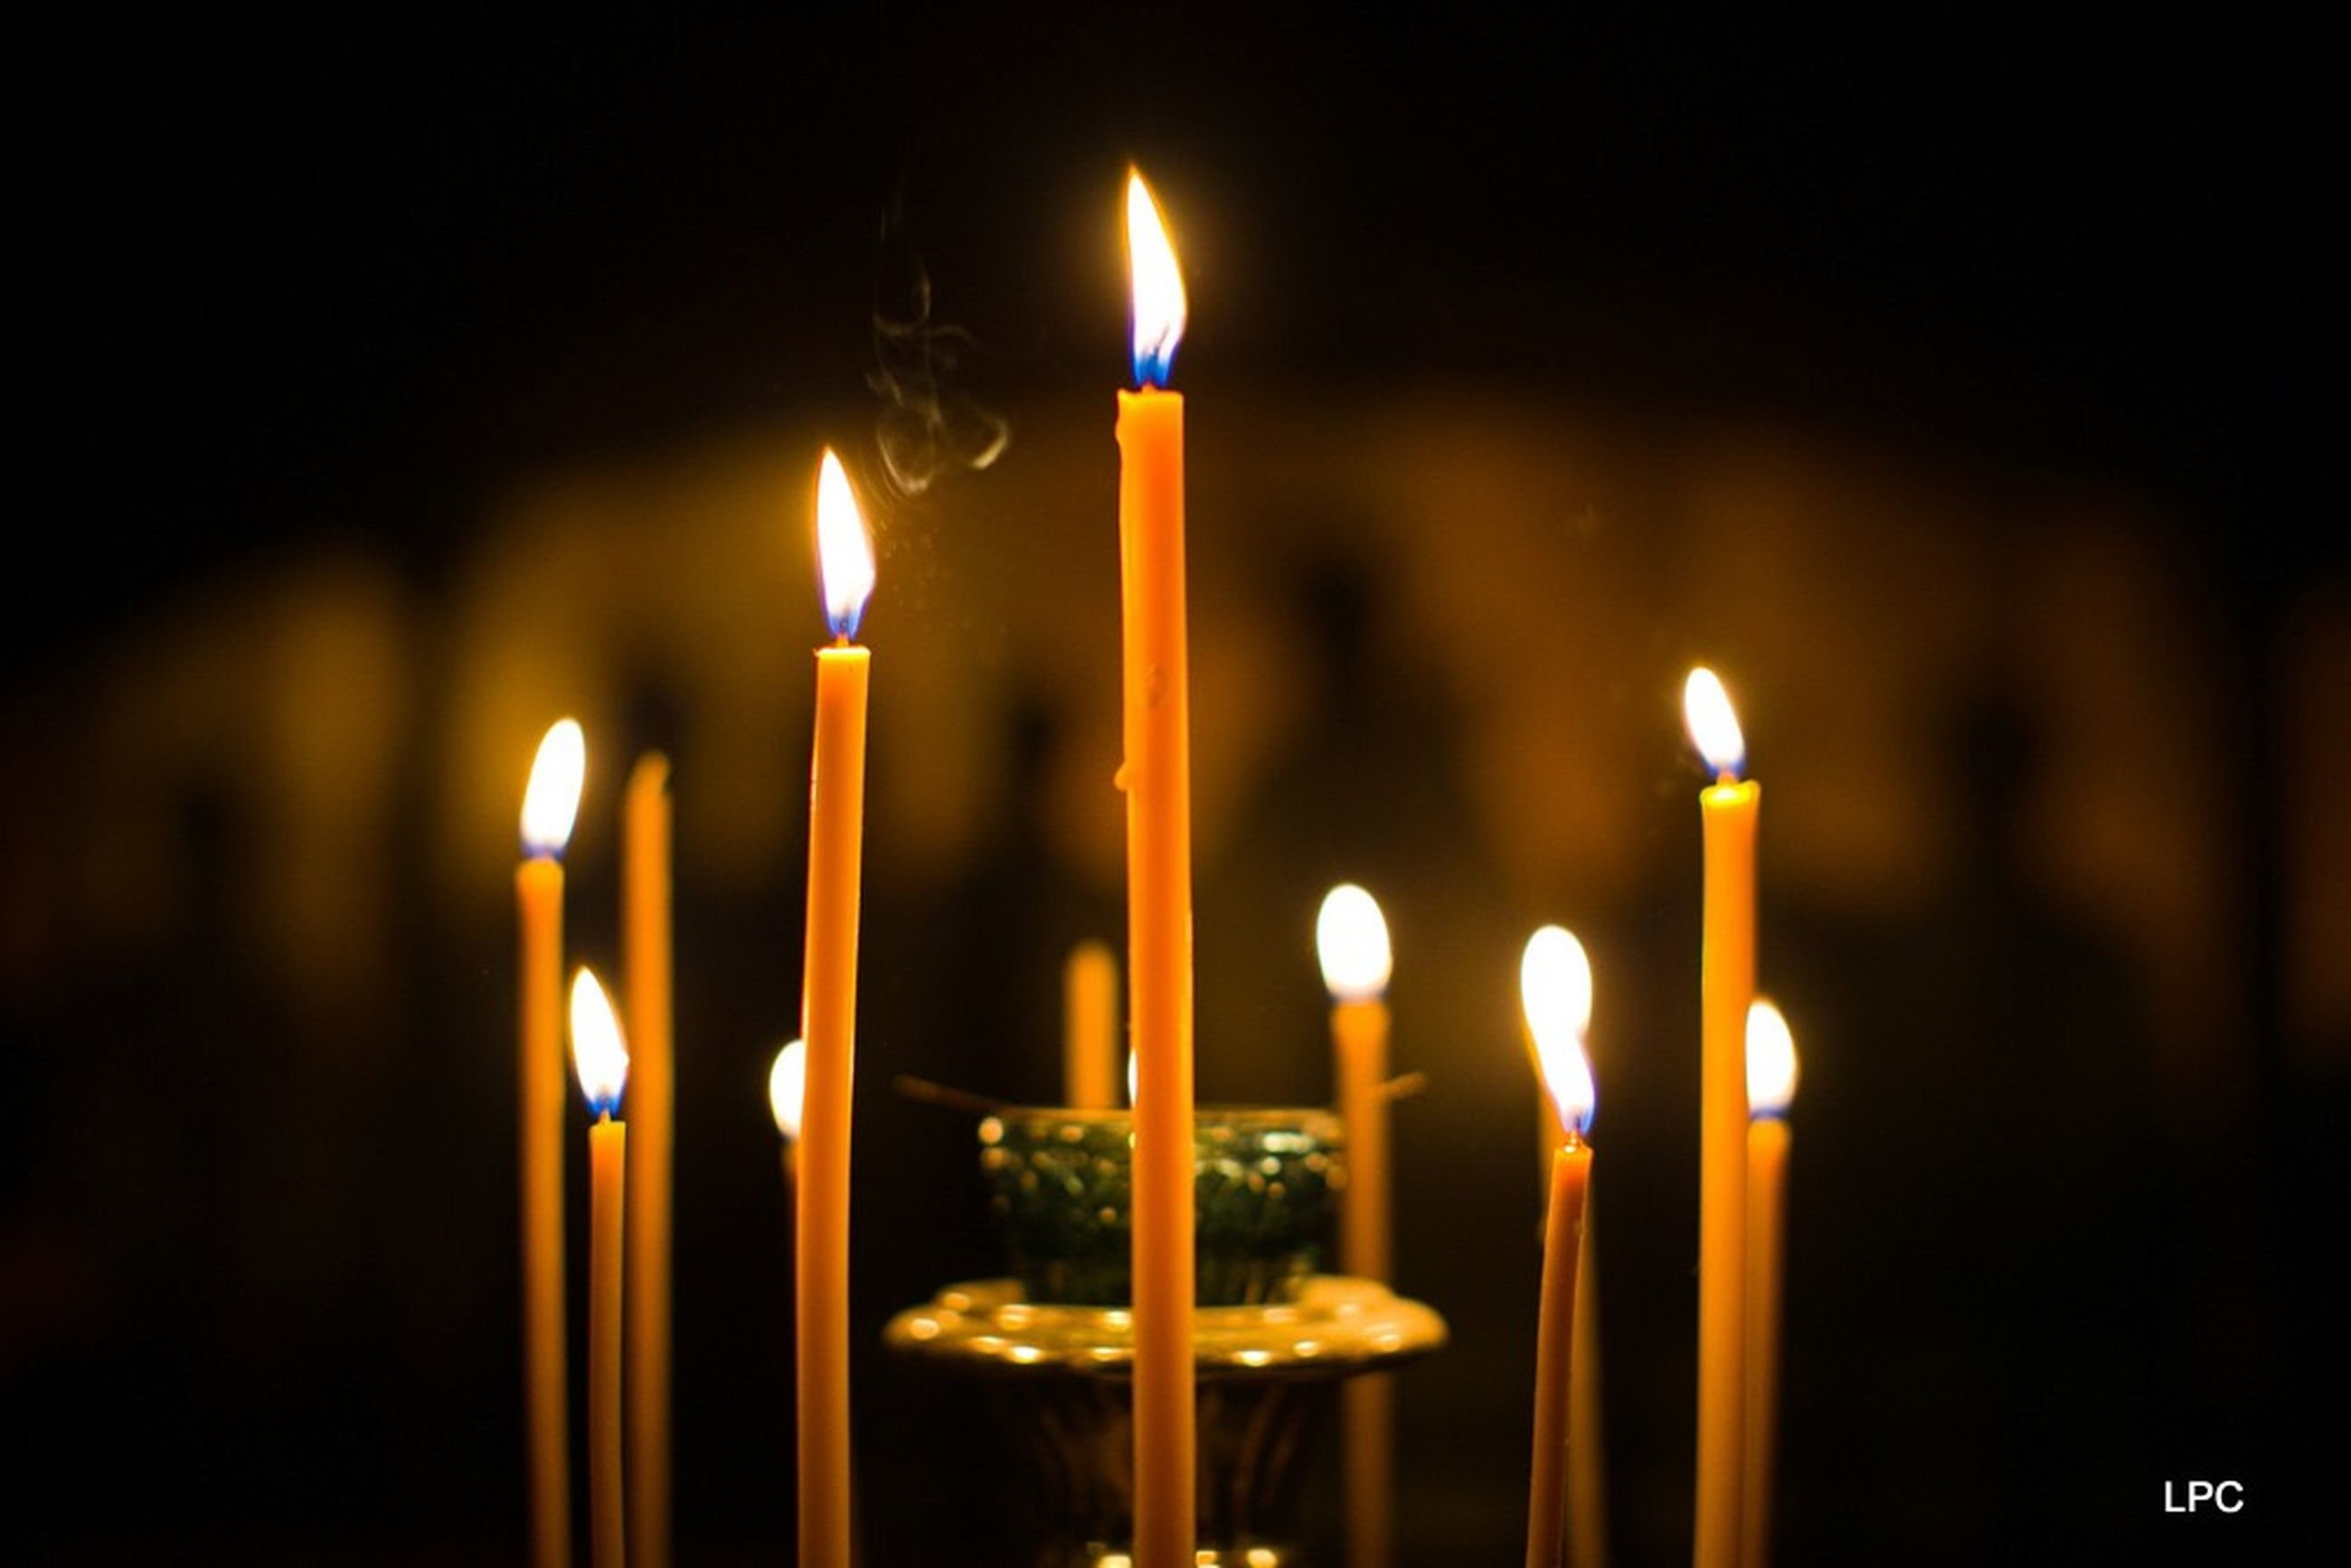 flame, fire, burning, candle, fire - natural phenomenon, heat - temperature, illuminated, close-up, nature, focus on foreground, no people, indoors, glowing, religion, lighting equipment, belief, celebration, spirituality, environment, place of worship, melting, black background